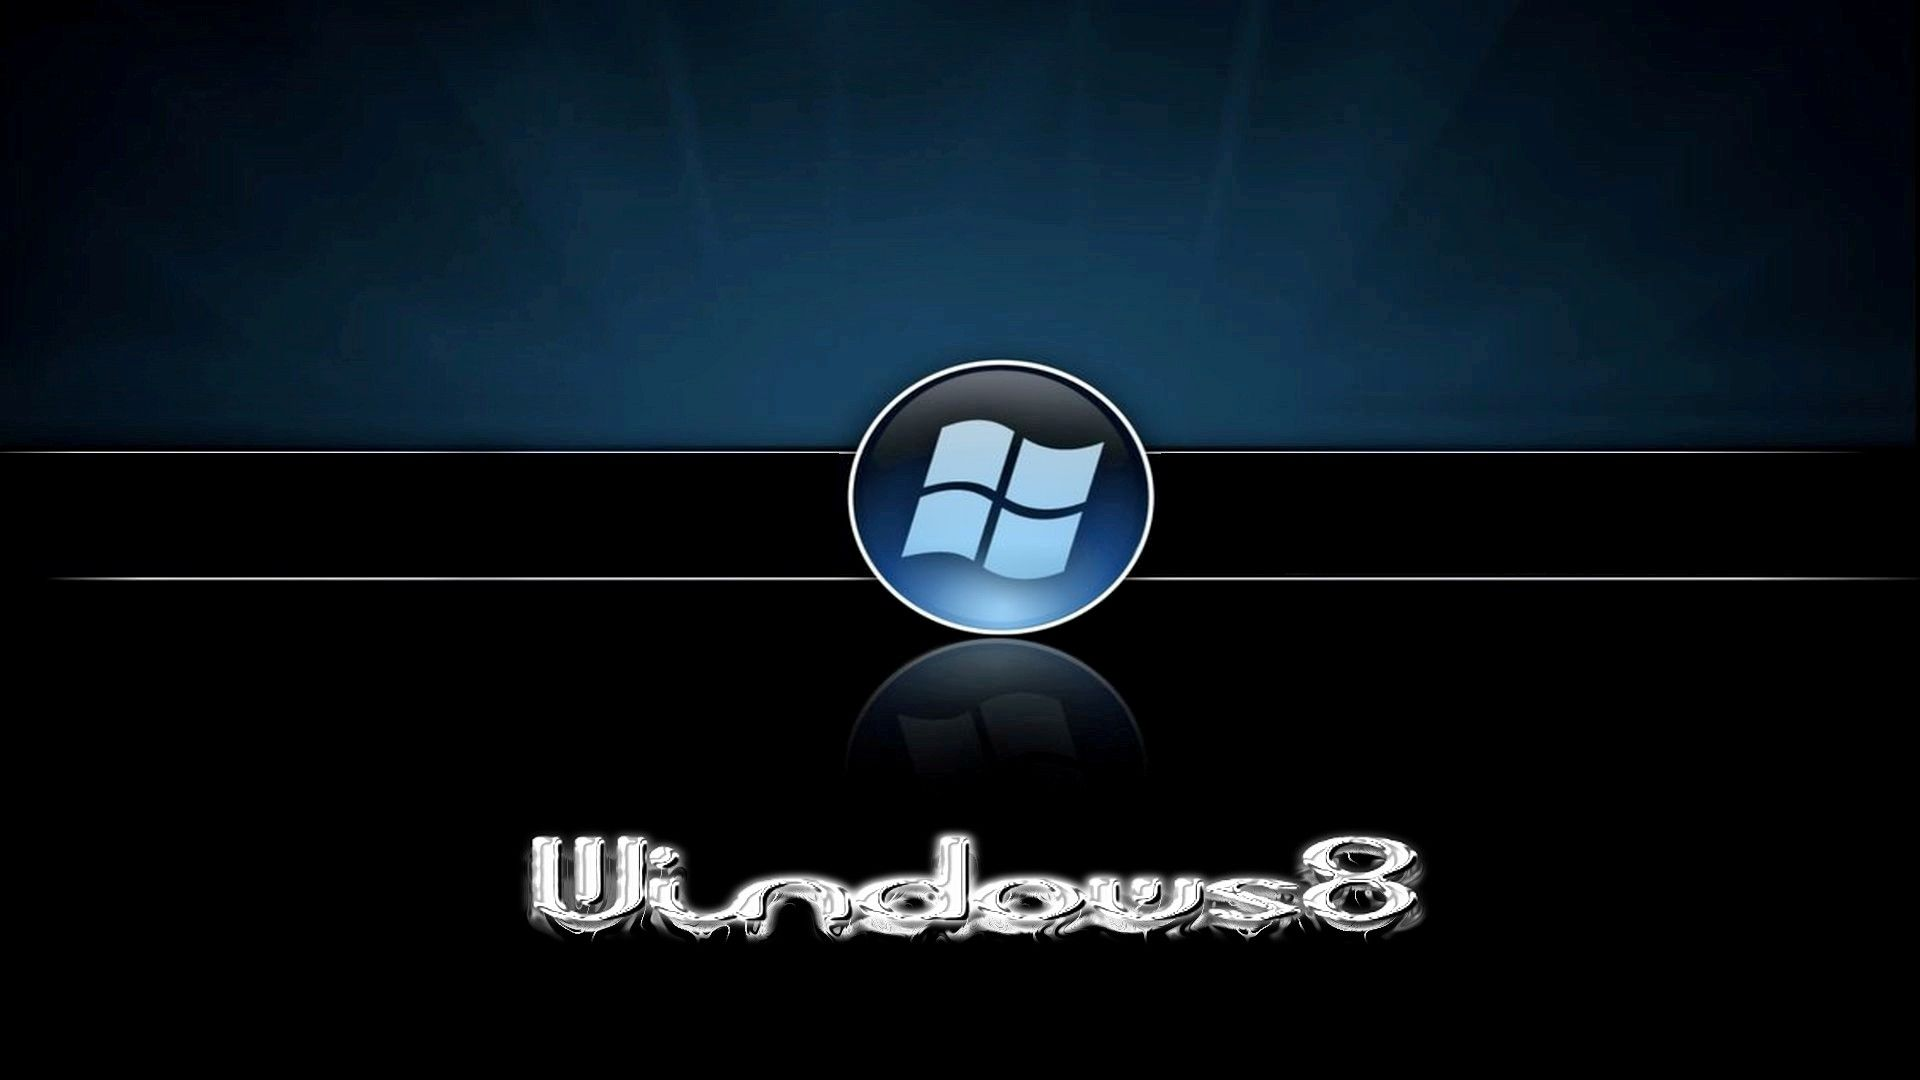 window 9 wallpaper 3d.